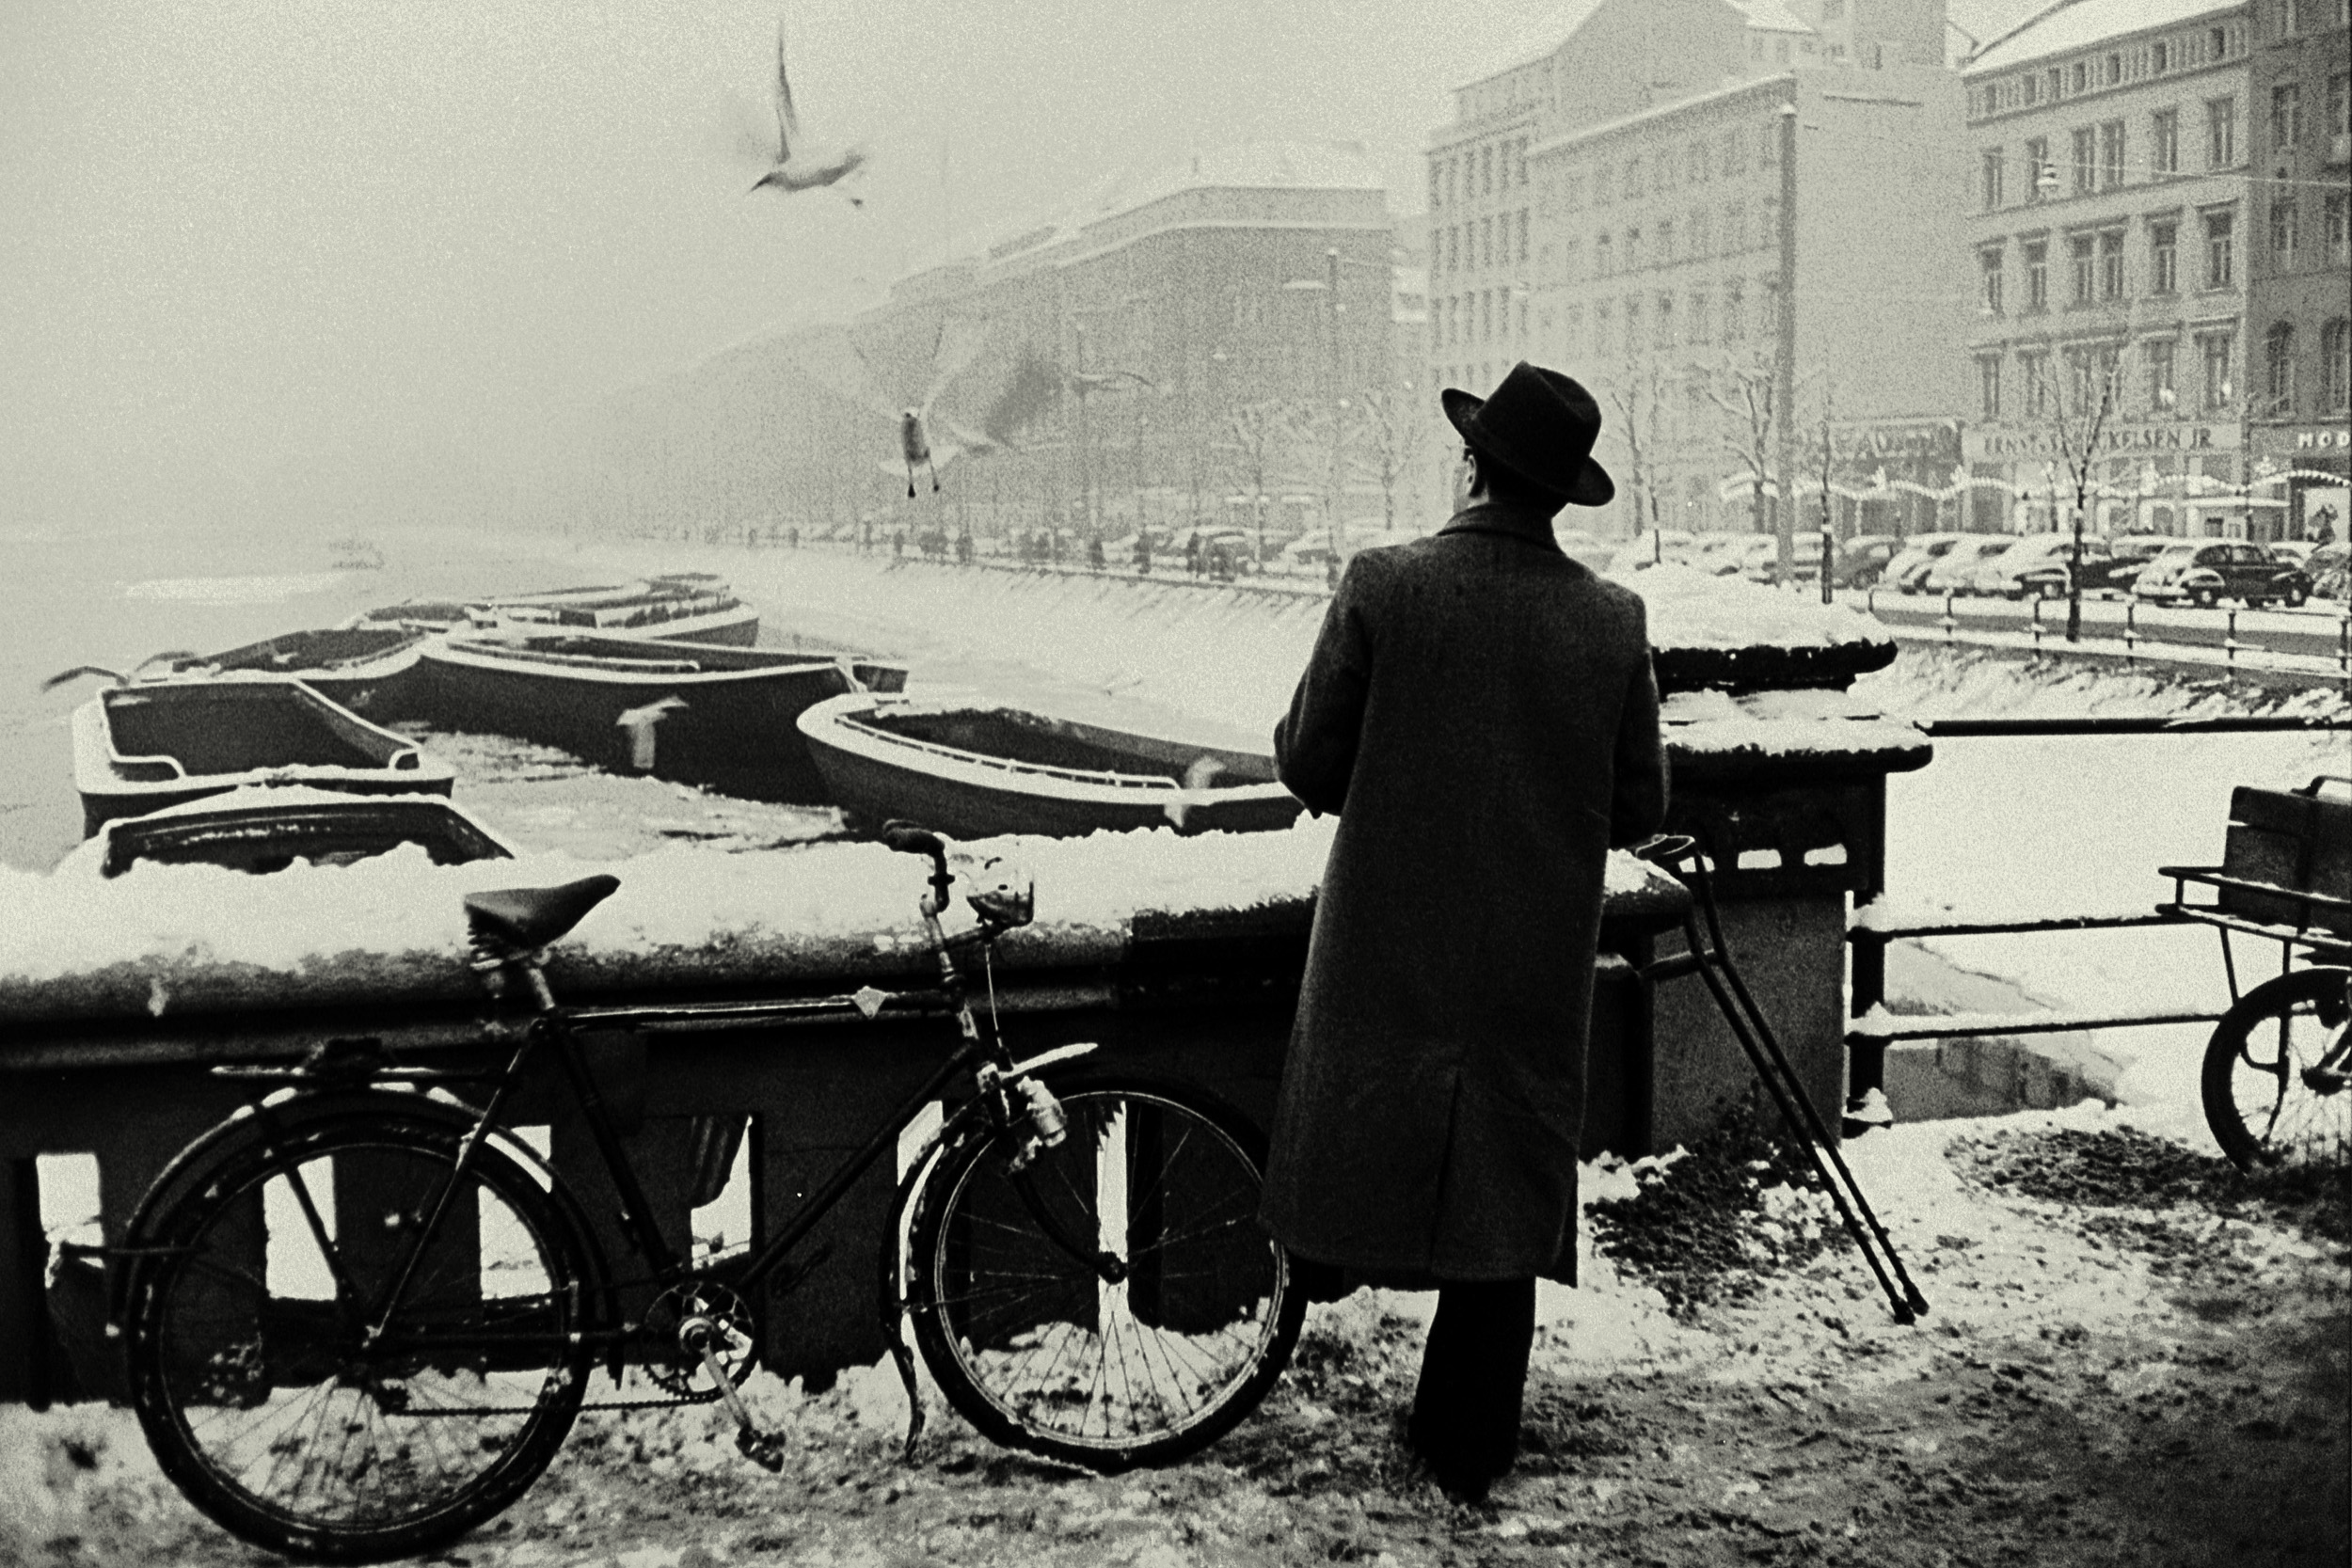 Mostra People and the City - Cartier-Bresson